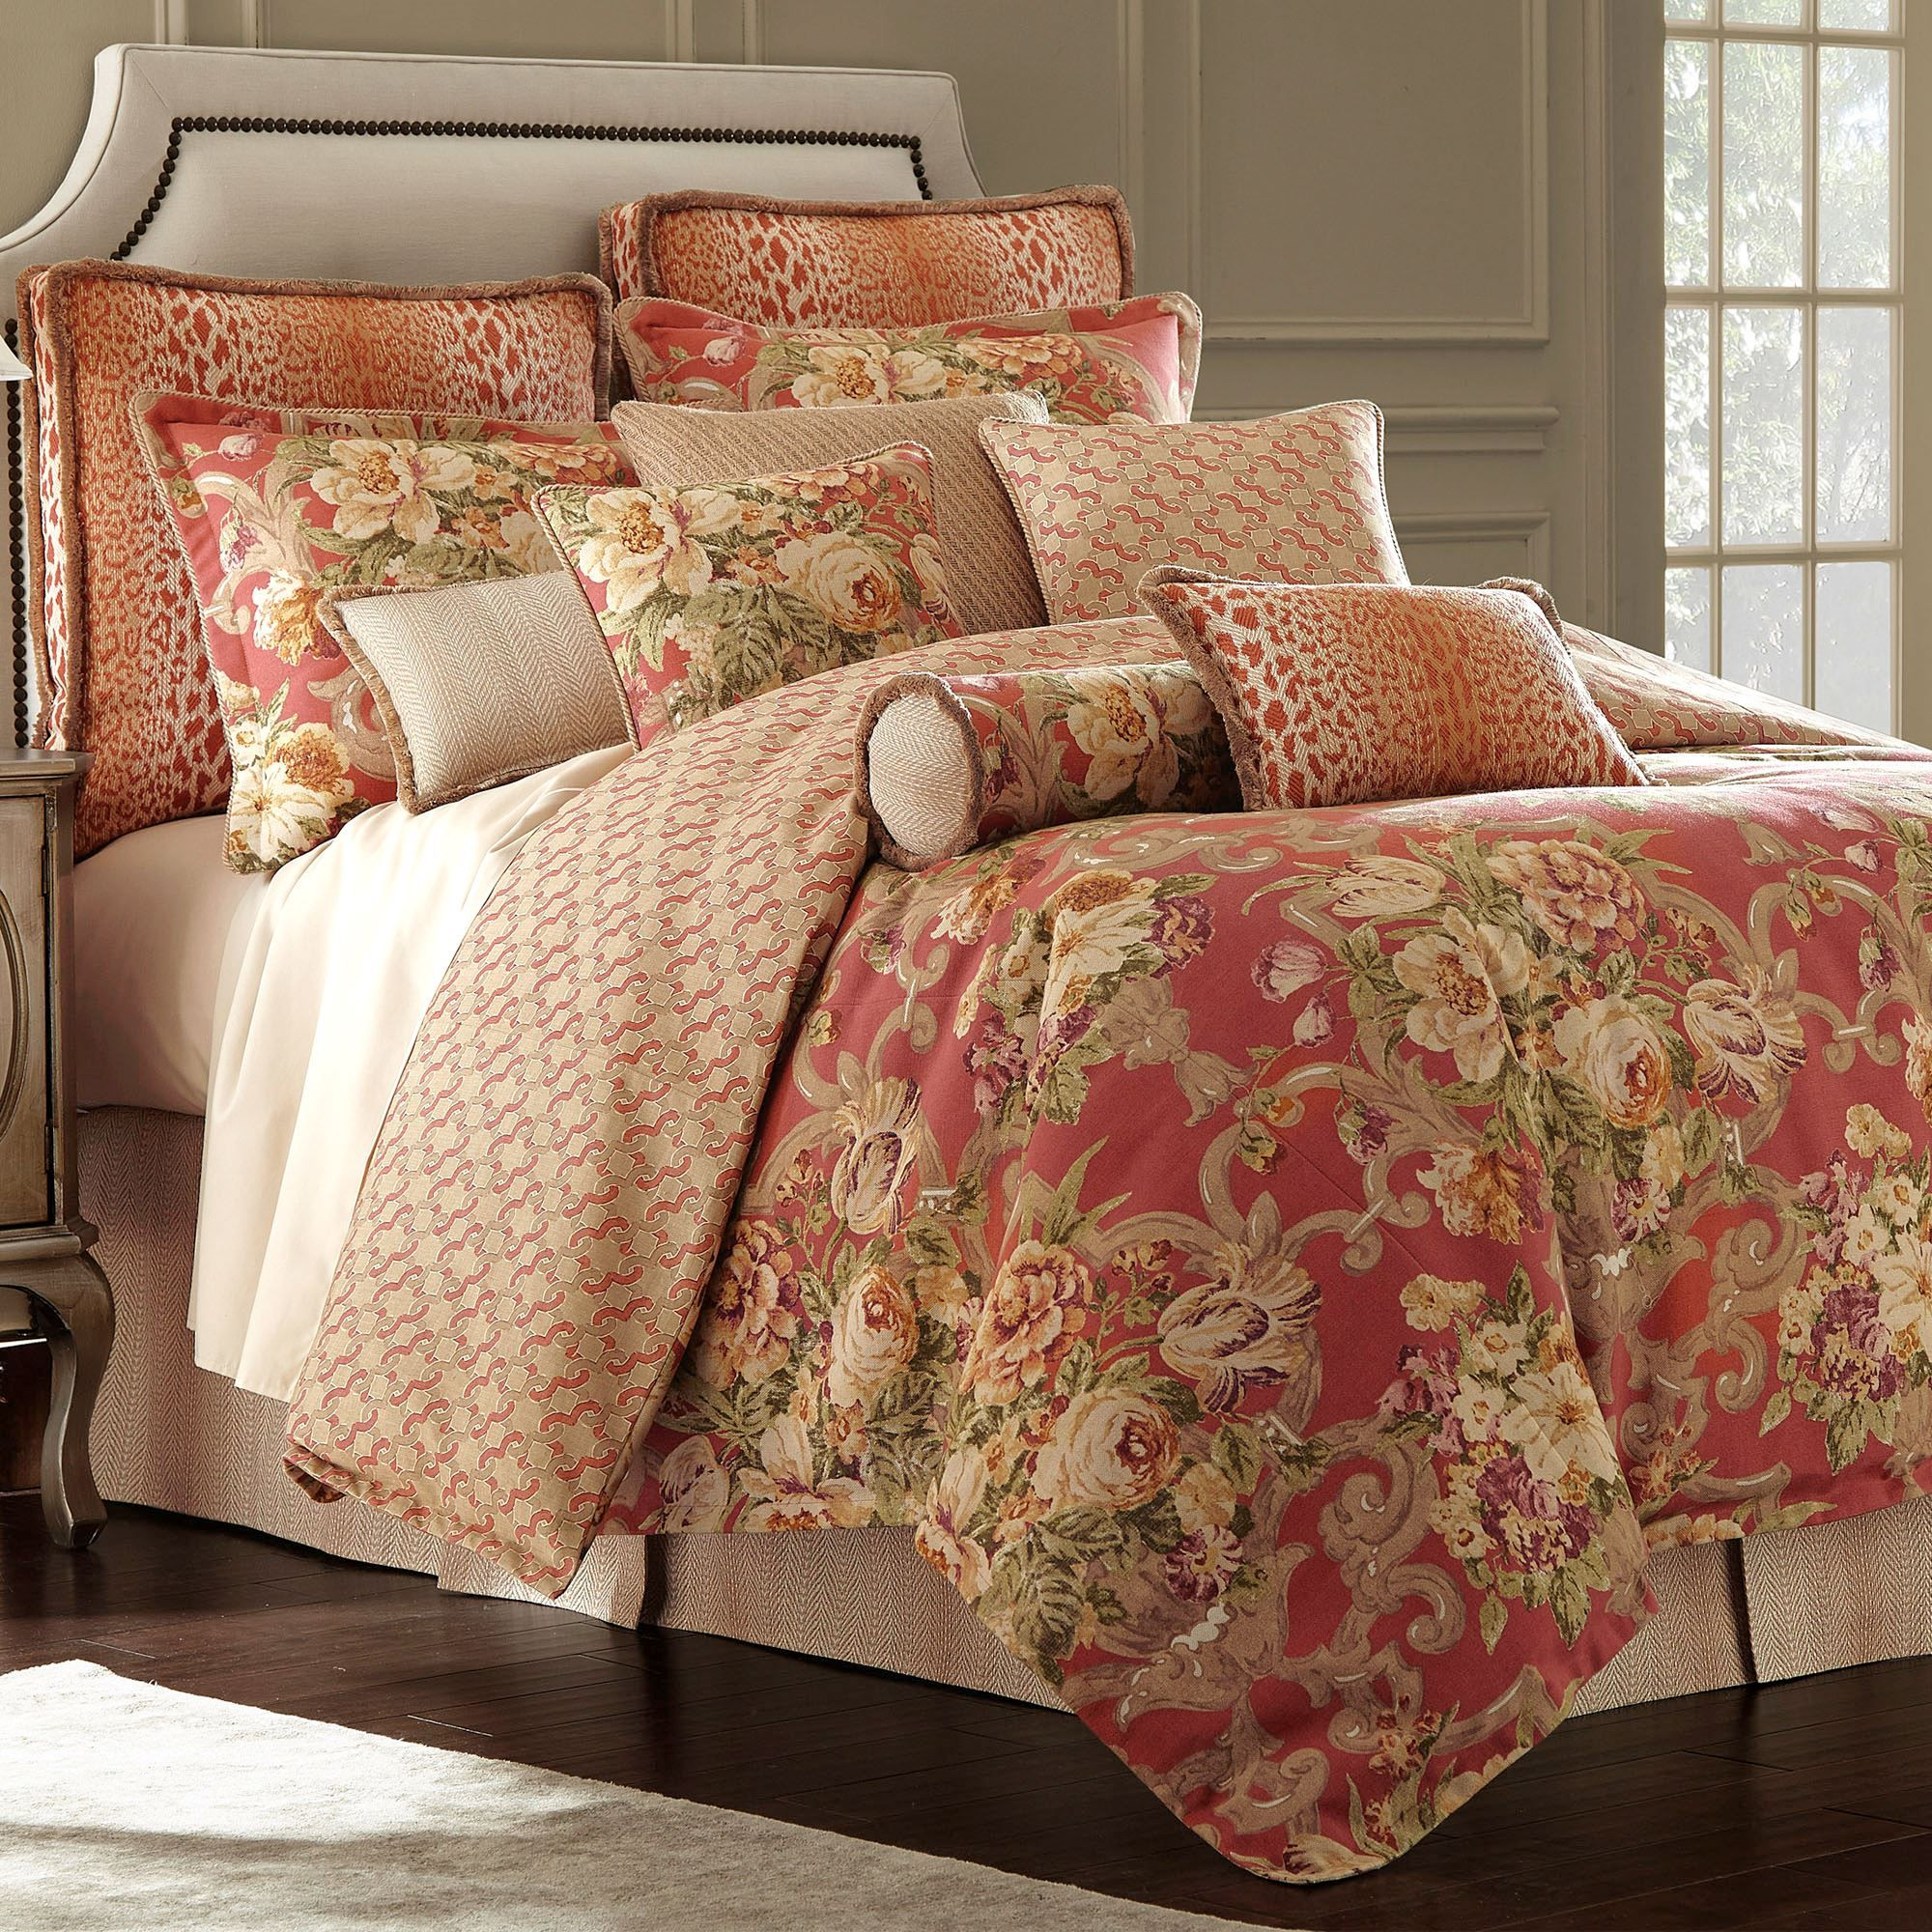 Floral Bouquet Red Comforter Bedding by Rose Tree